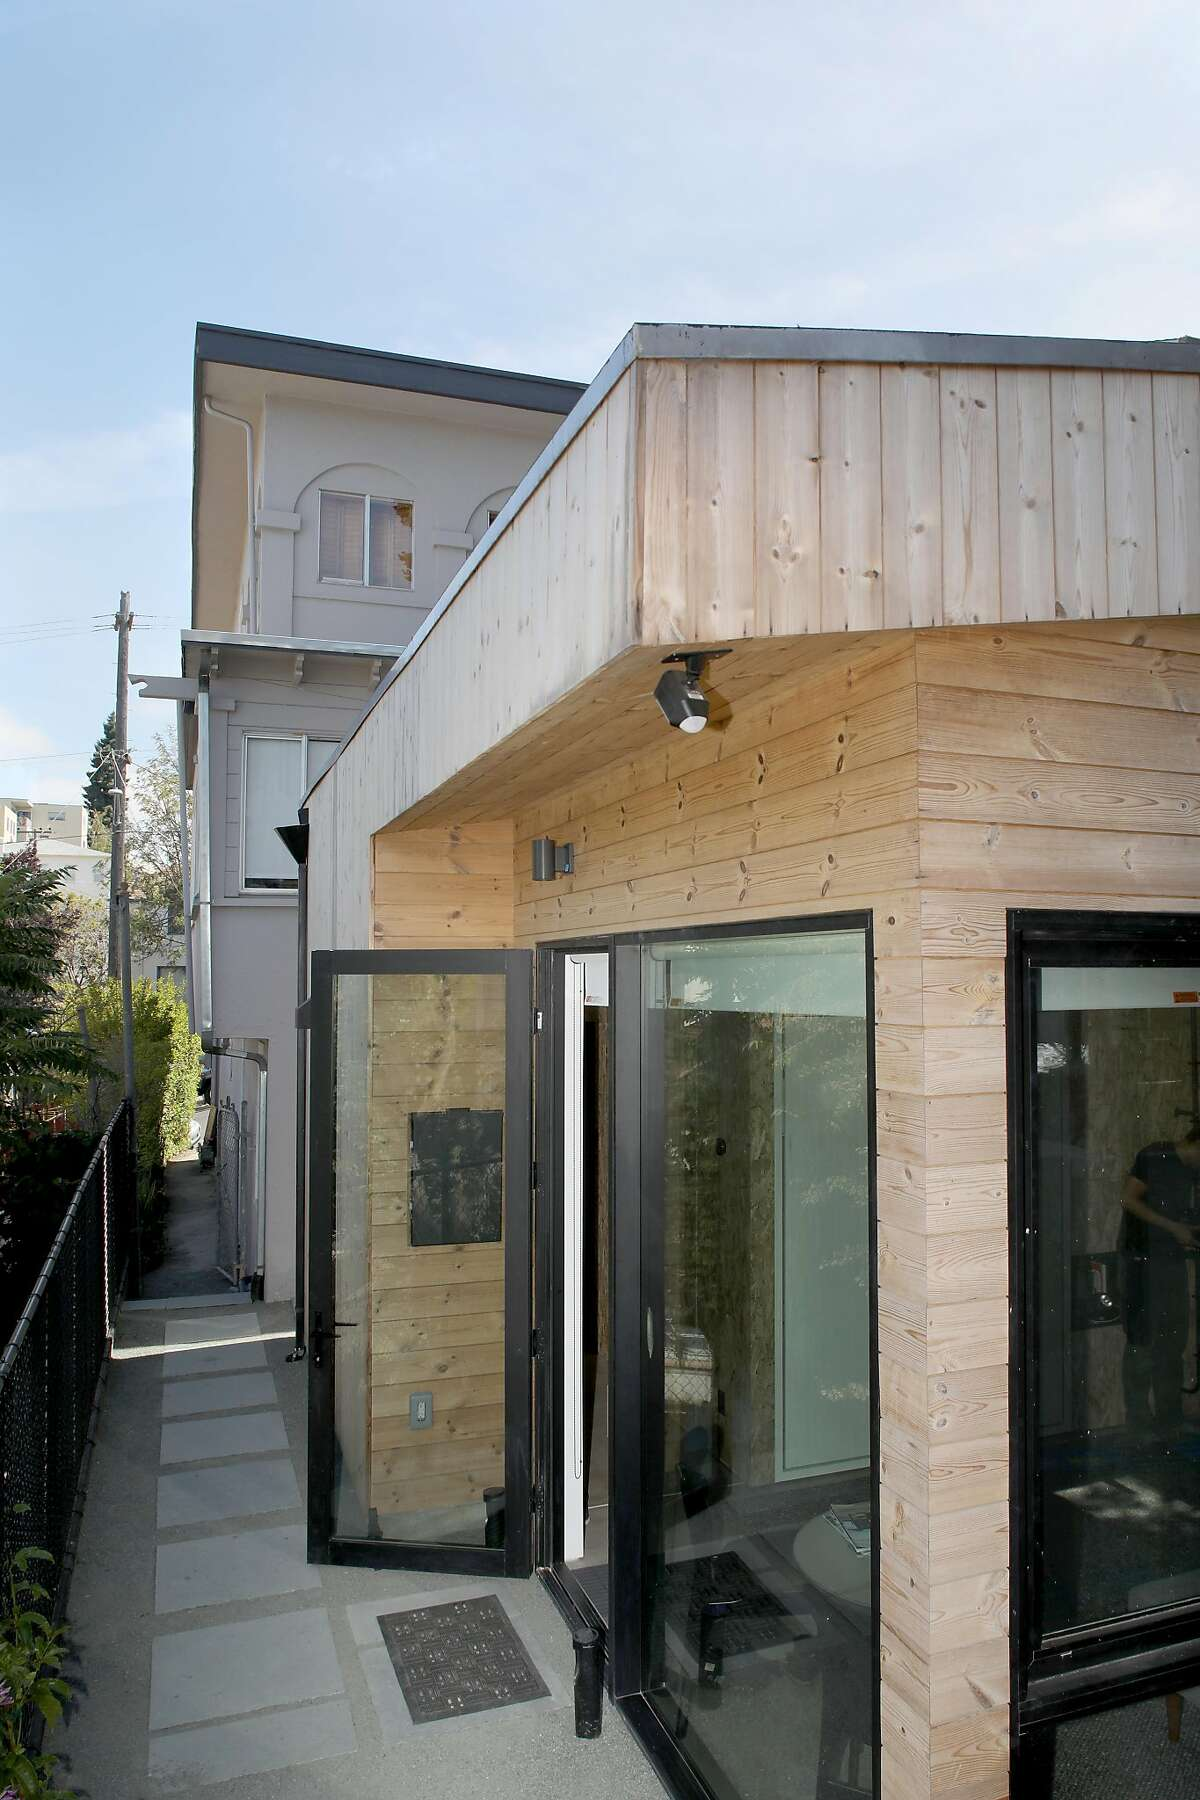 Outside view of �Kleines Haus,� a simple, sleek tiny home designed by architect Peter Liang for his mother, Irmhild tucked behind the house in Oakland Lake Merritt on Thursday, July 18, 2019 in Oakland, Calif.